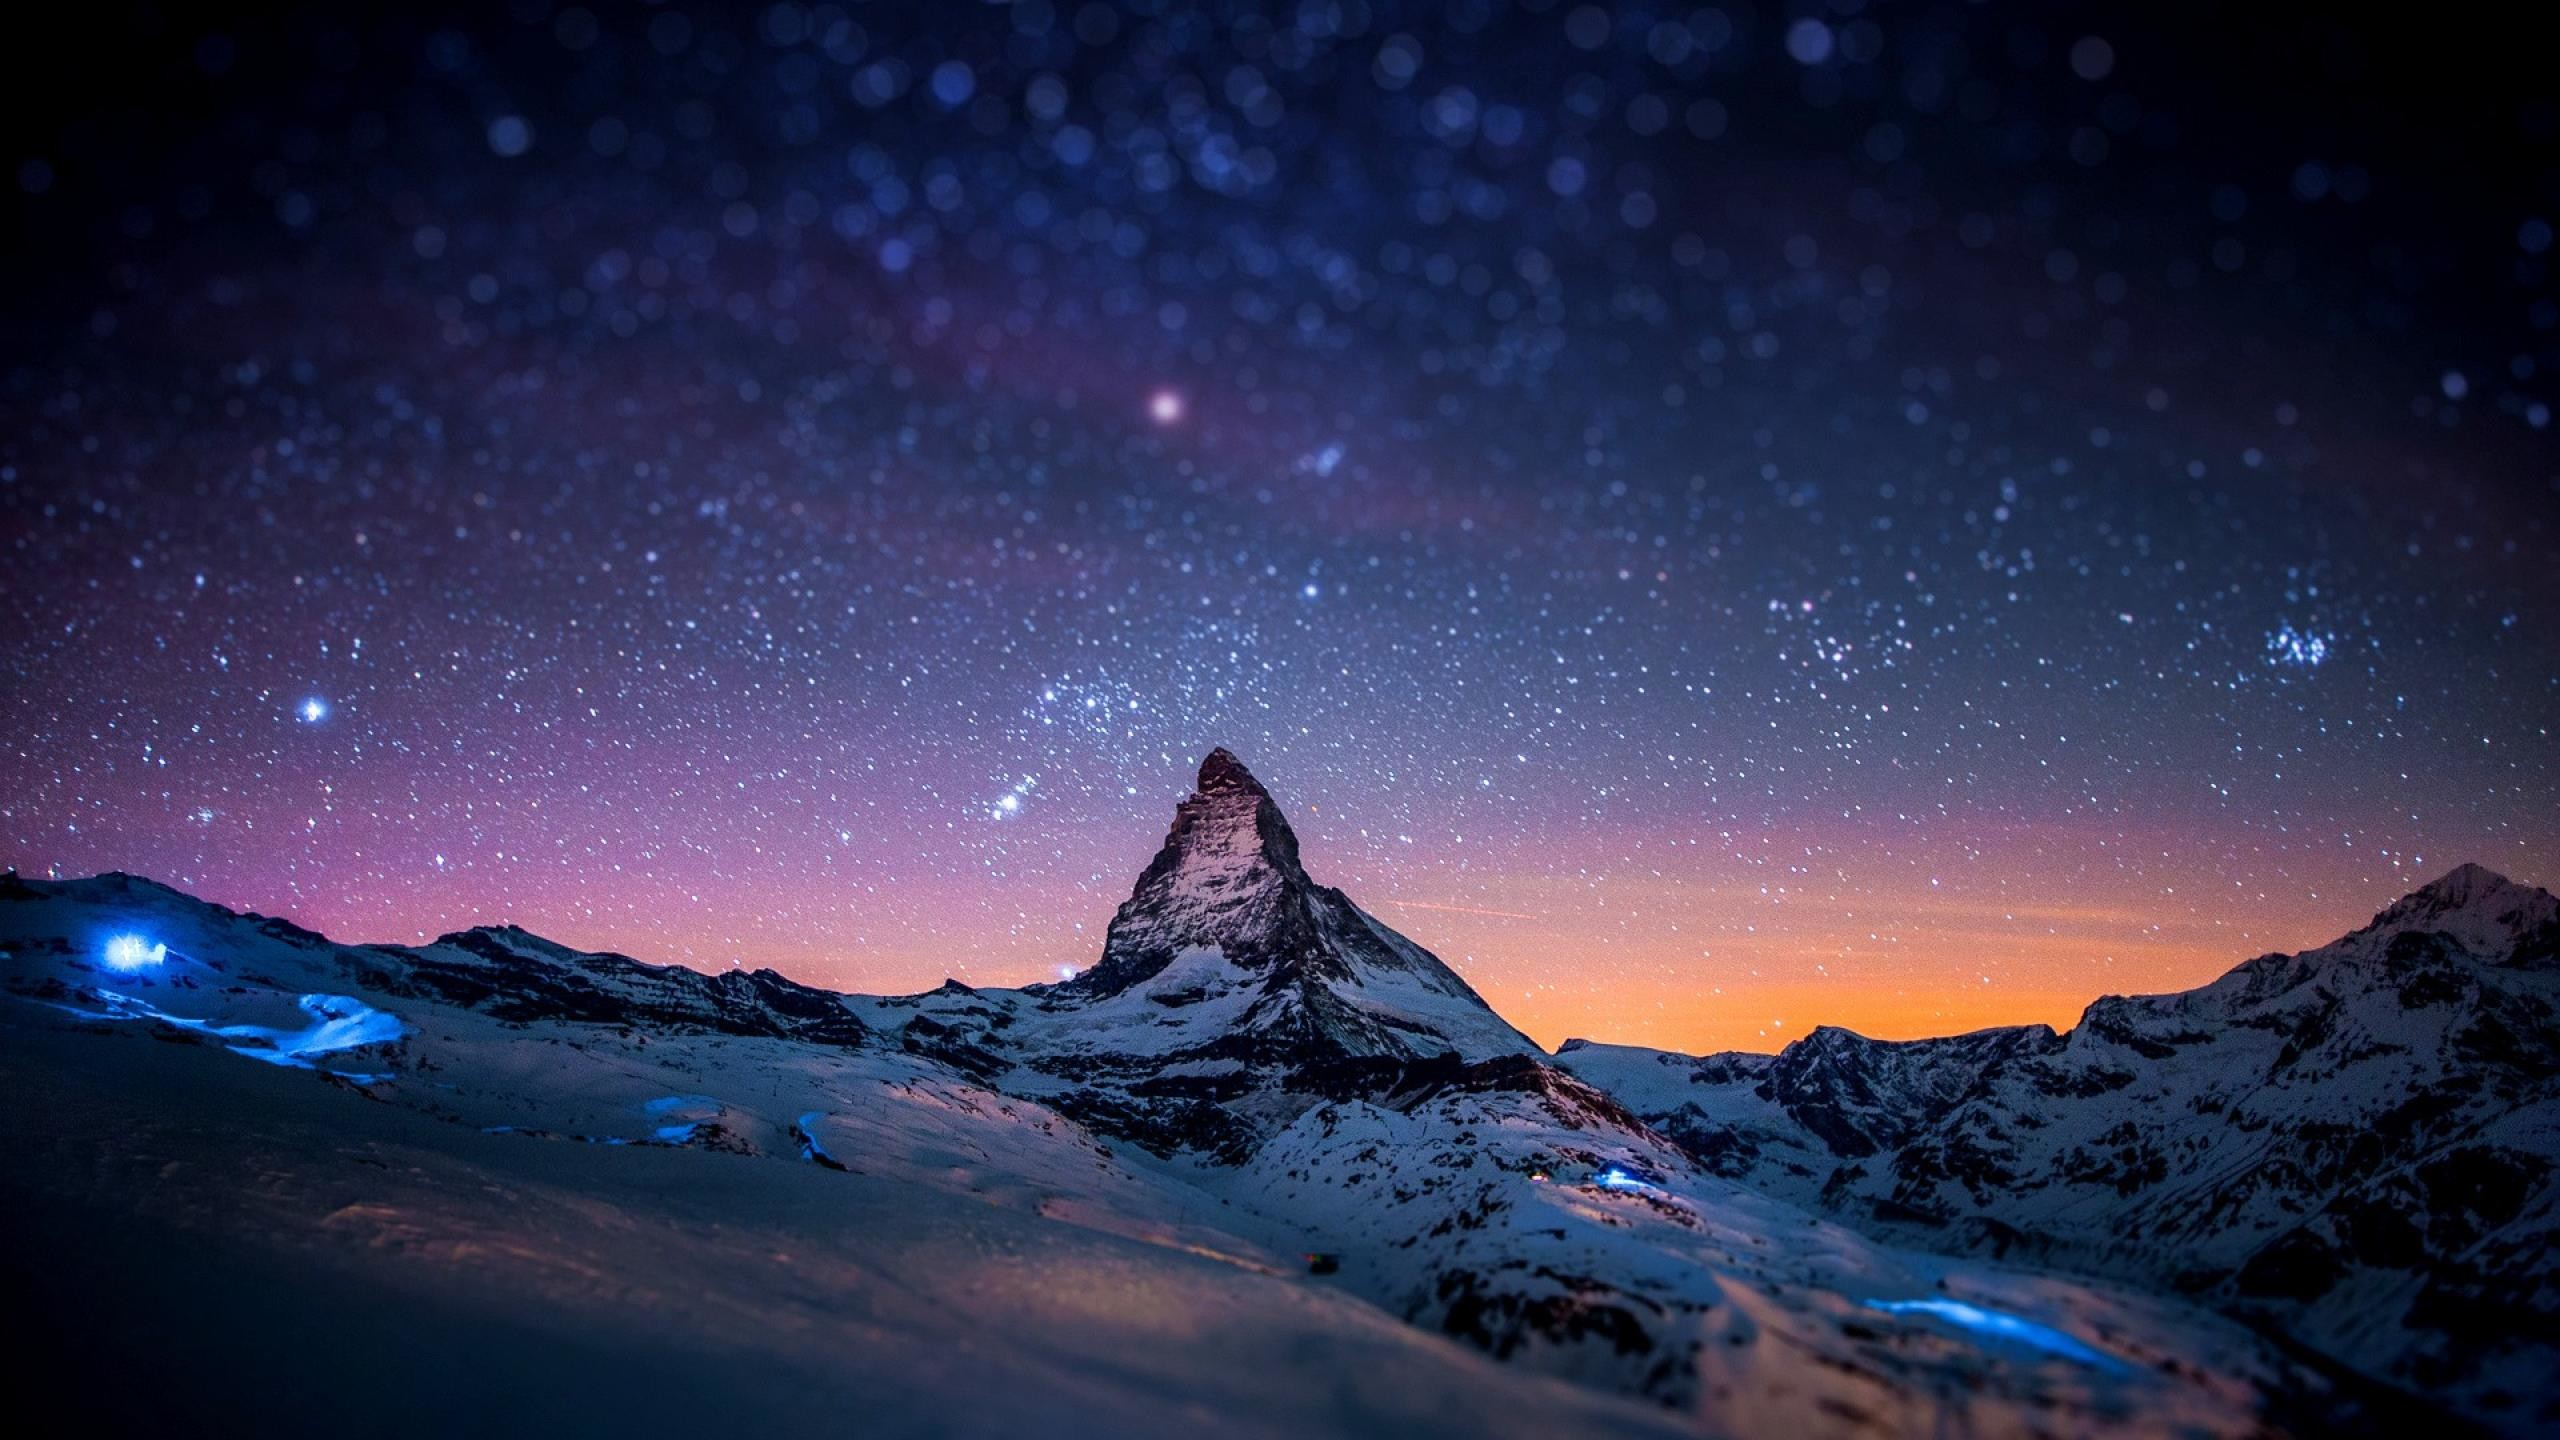 10 Latest 1080p Hd Space Wallpapers Full Hd 1080p For Pc: HD Purple Space Wallpaper (65+ Images